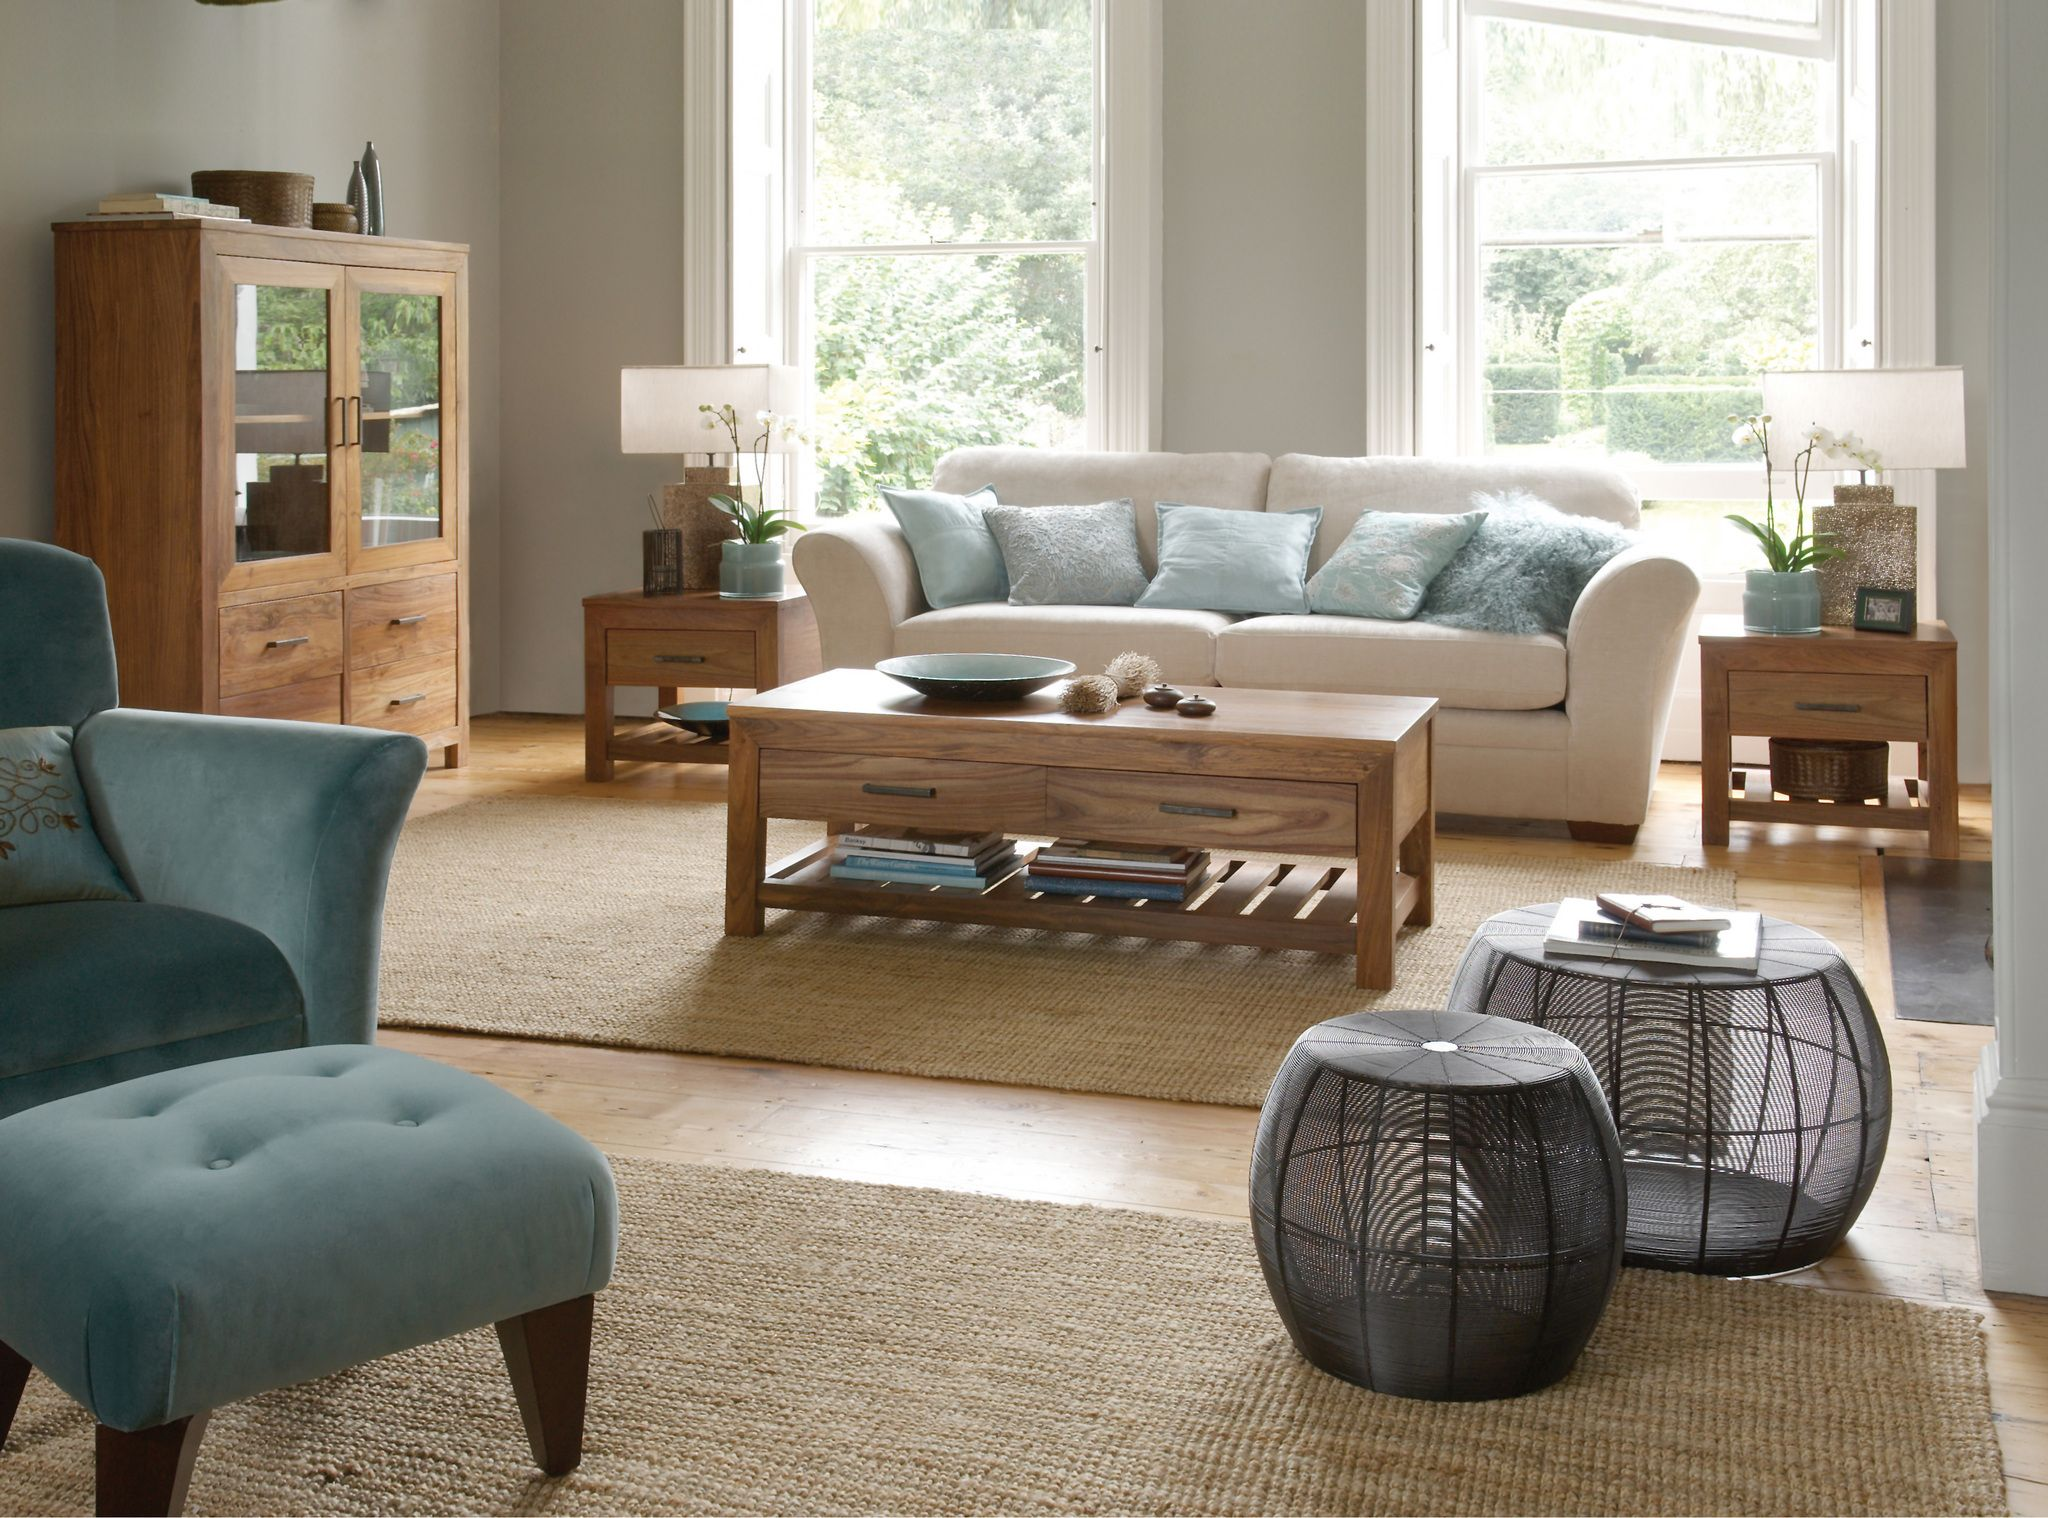 grey and blue living room | Soft grey living room with hints of blue